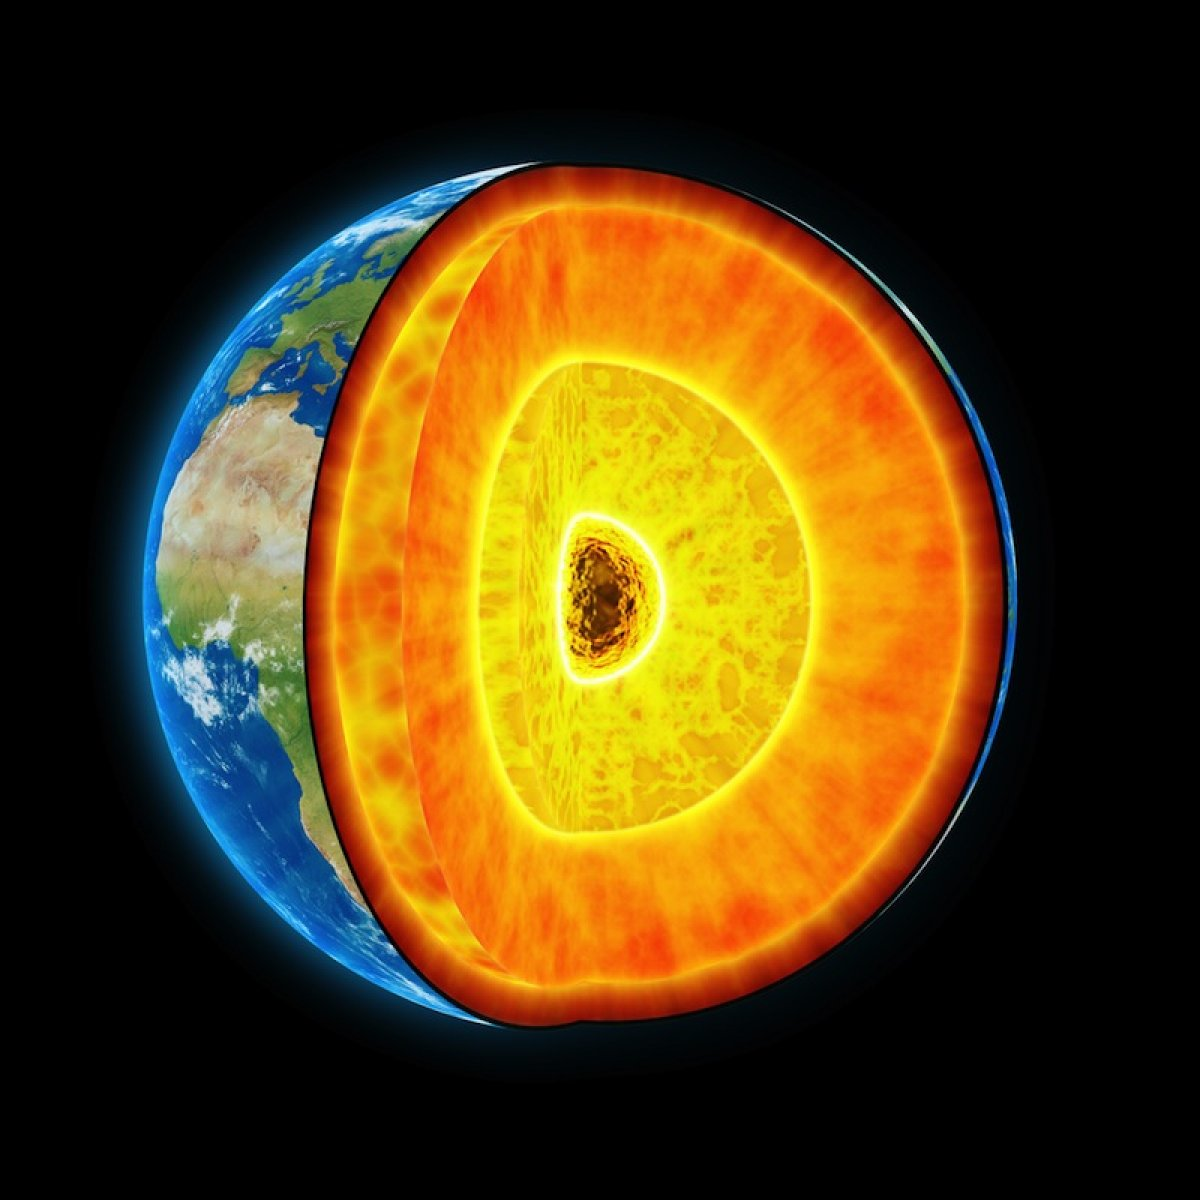 More oxygen in the earth's core.